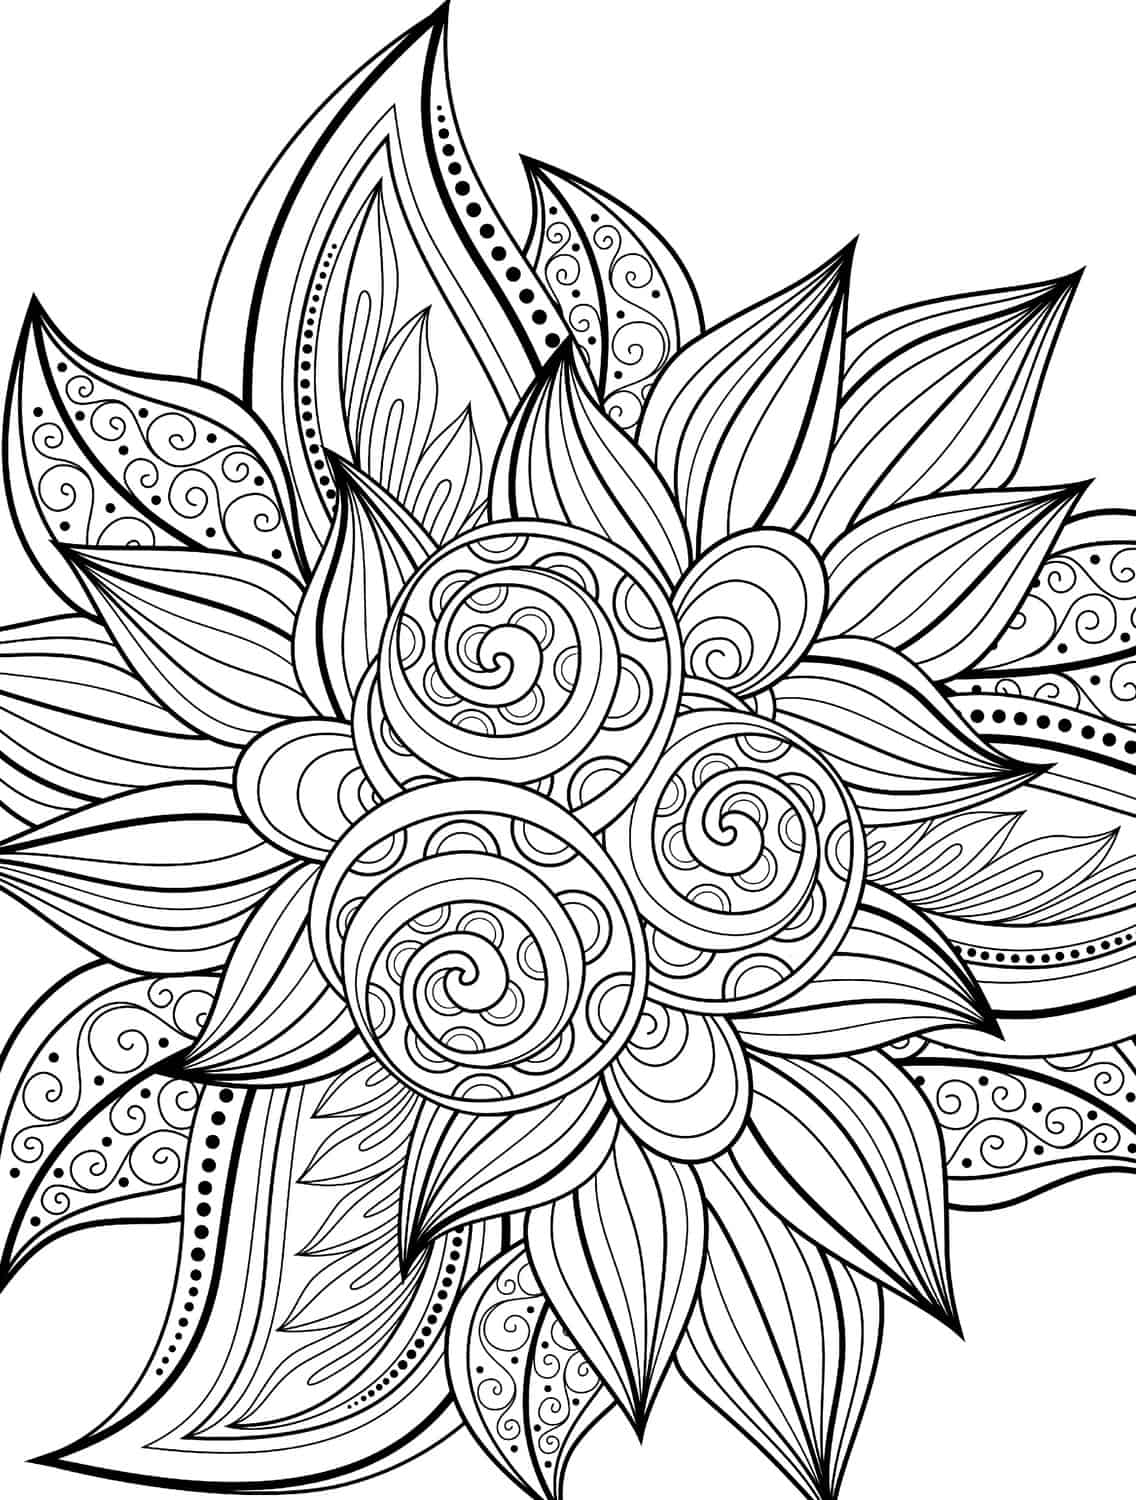 free easy coloring pages free easy to print bear coloring pages valentine free pages coloring easy